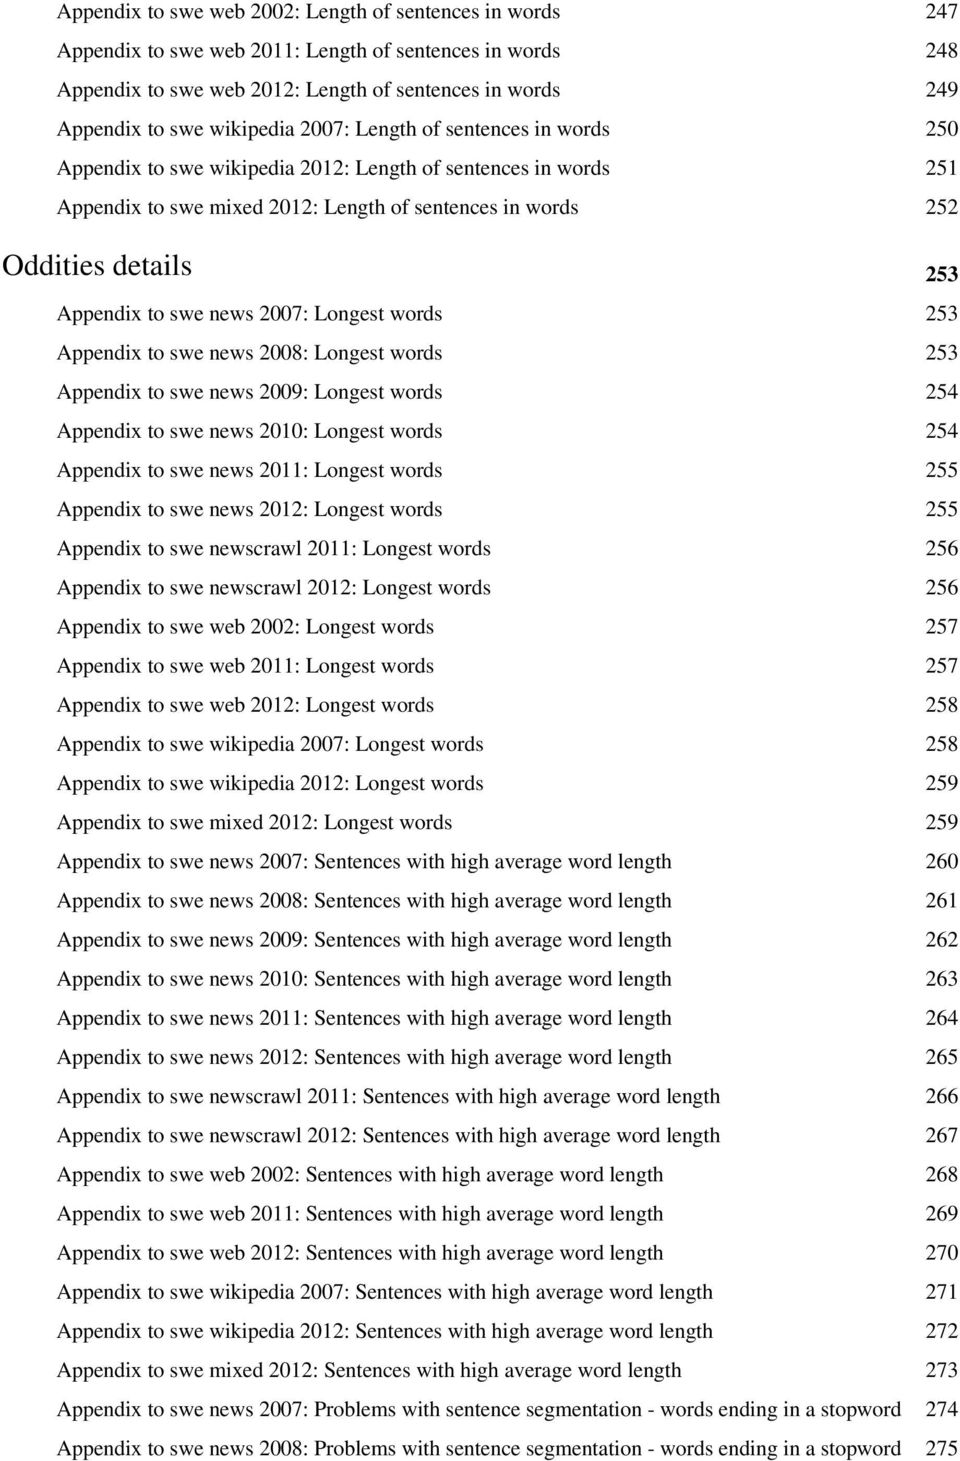 Appendix to swe news 2007: Longest words 253 Appendix to swe news 2008: Longest words 253 Appendix to swe news 2009: Longest words 254 Appendix to swe news 2010: Longest words 254 Appendix to swe